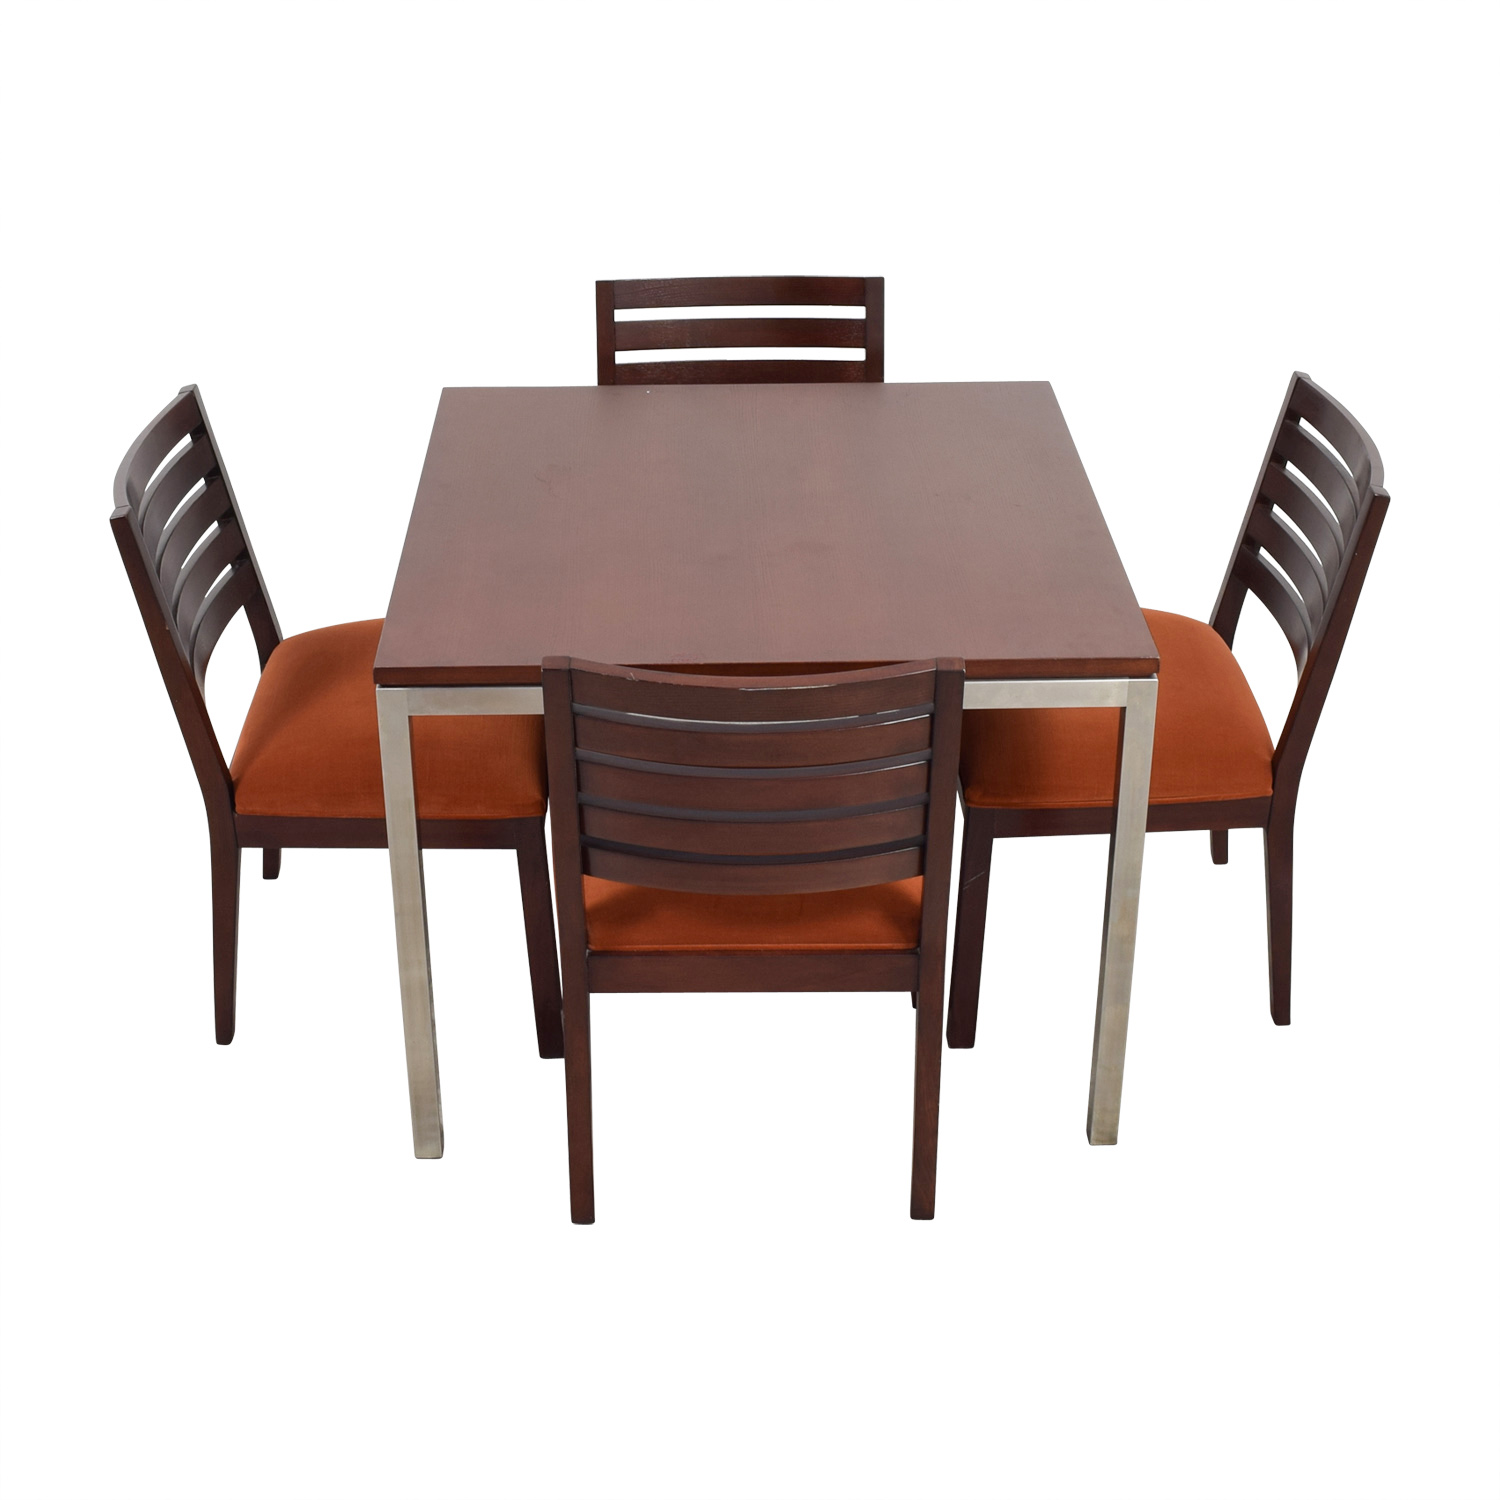 ... Ethan Allen Ethan Allen Wood And Chrome Dining Set Crimson Red ...